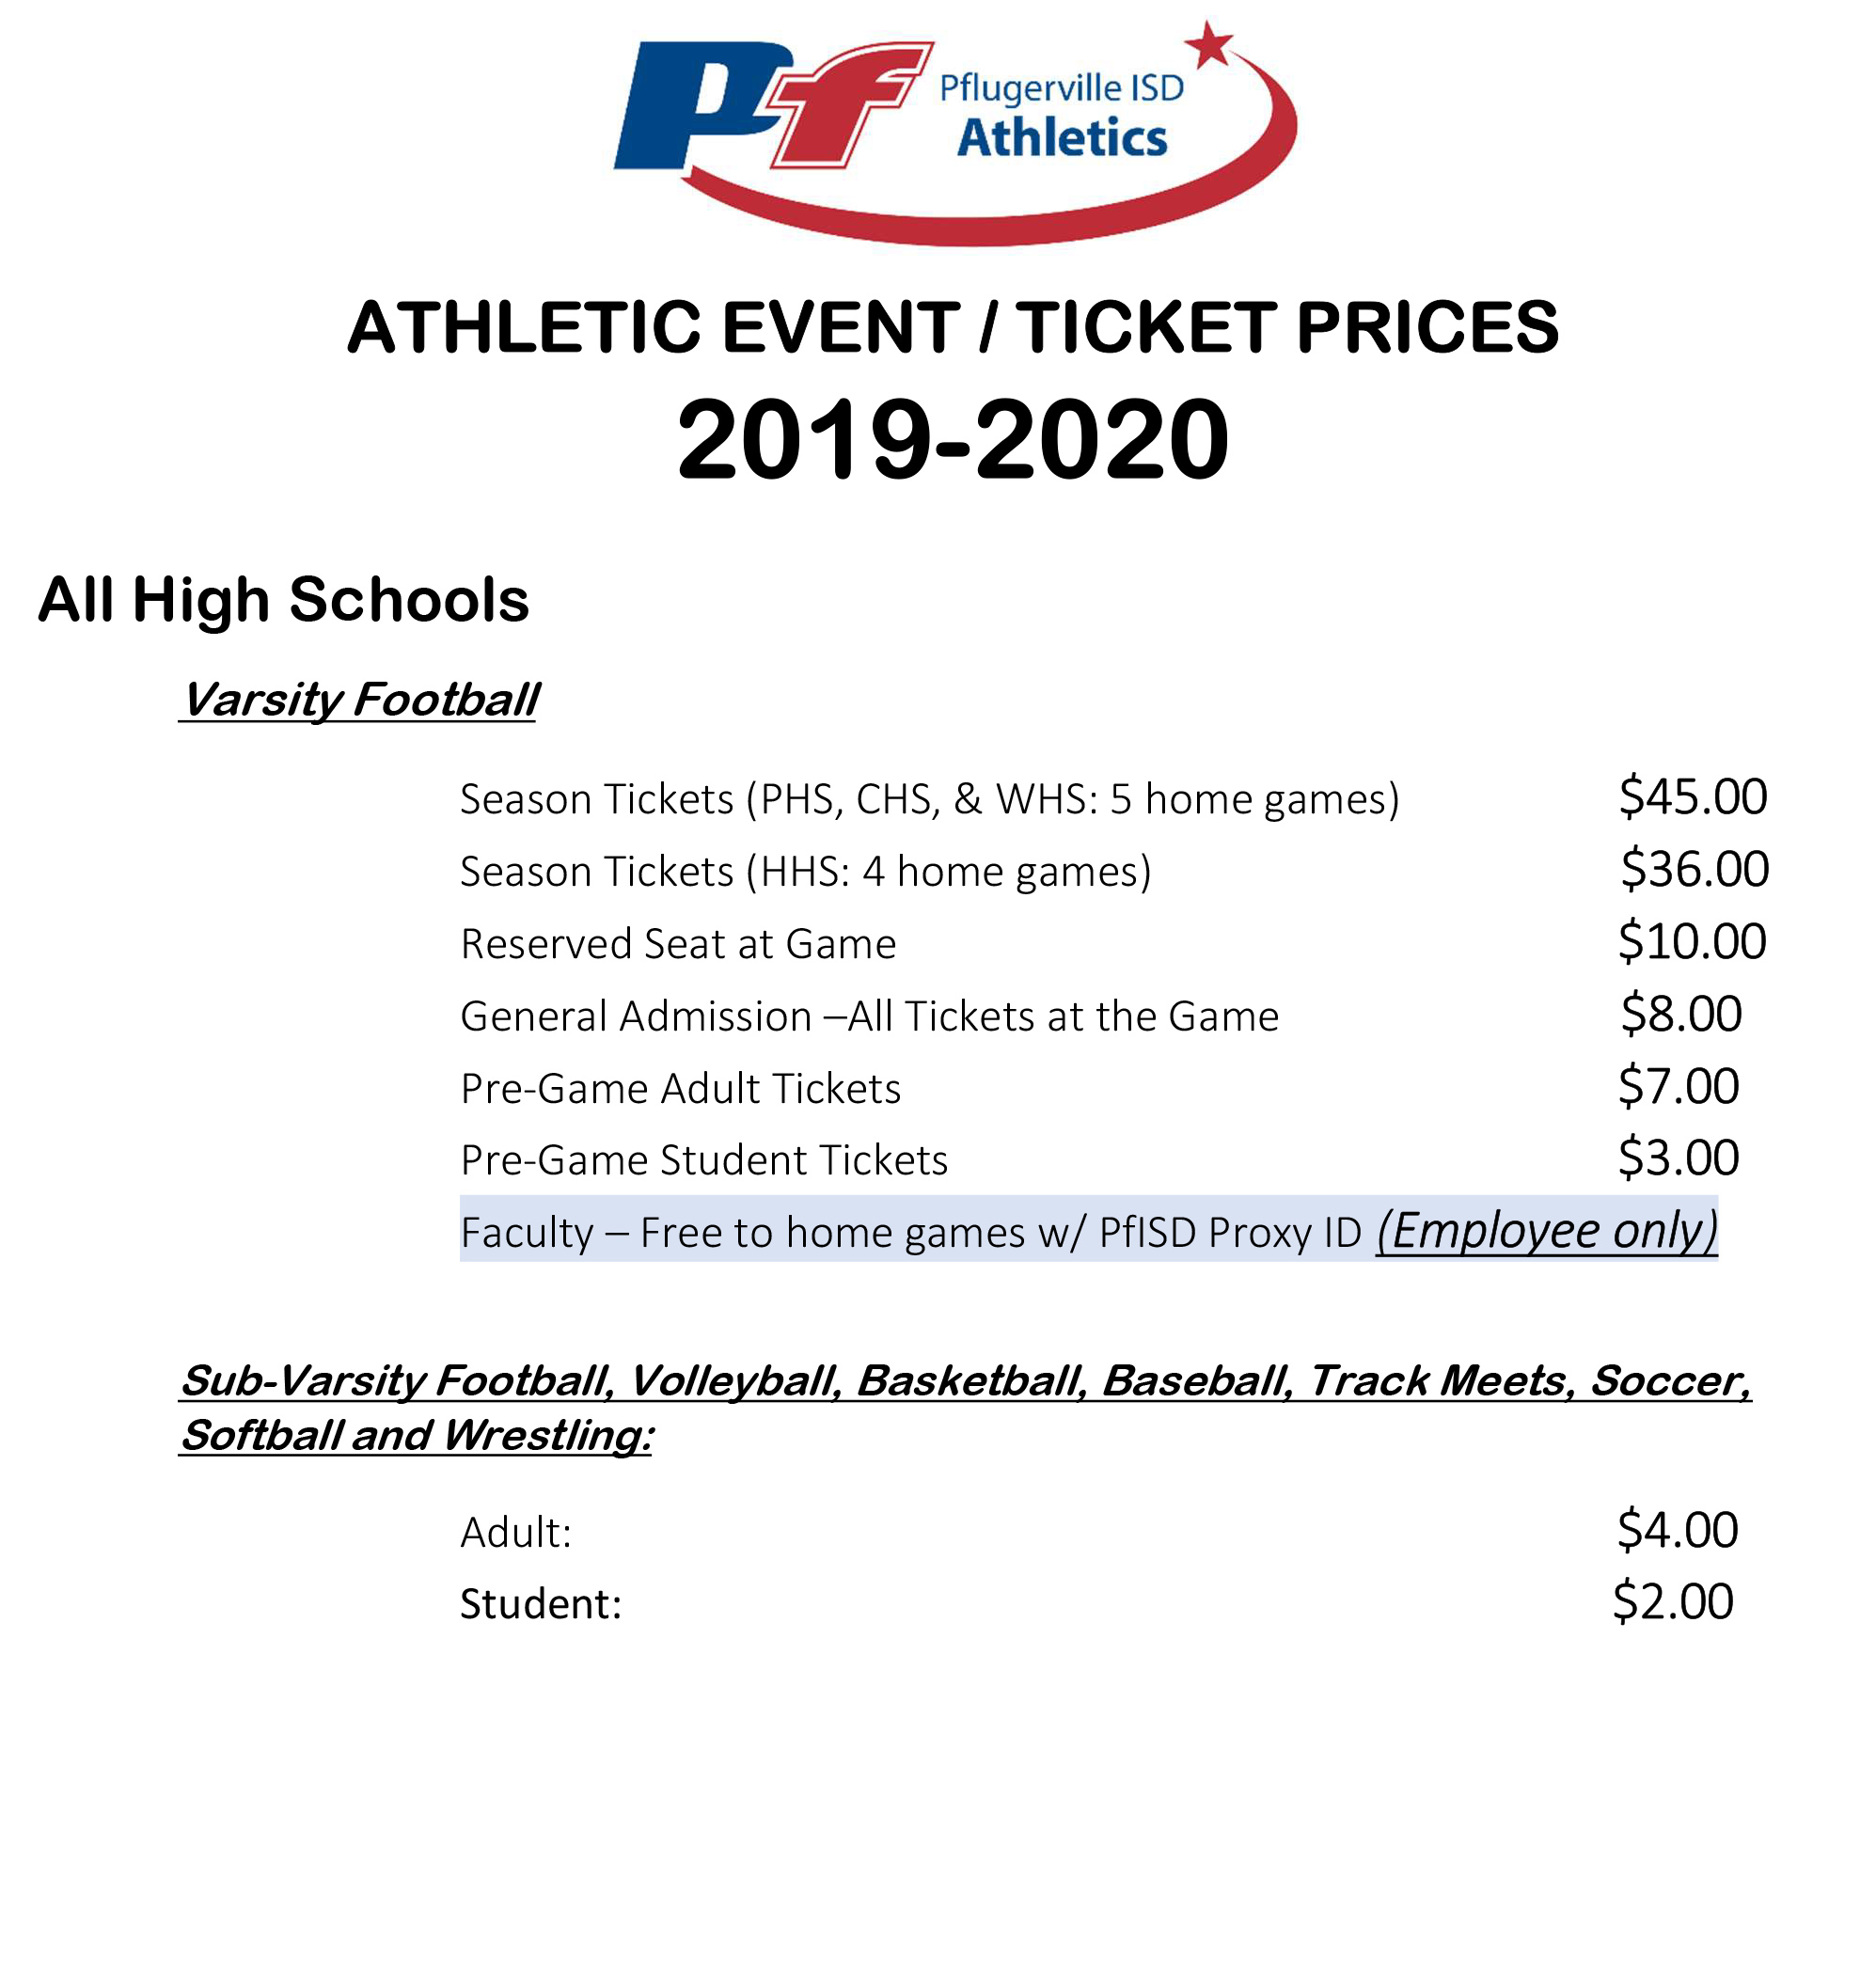 Ticket Prices: 2019-2020